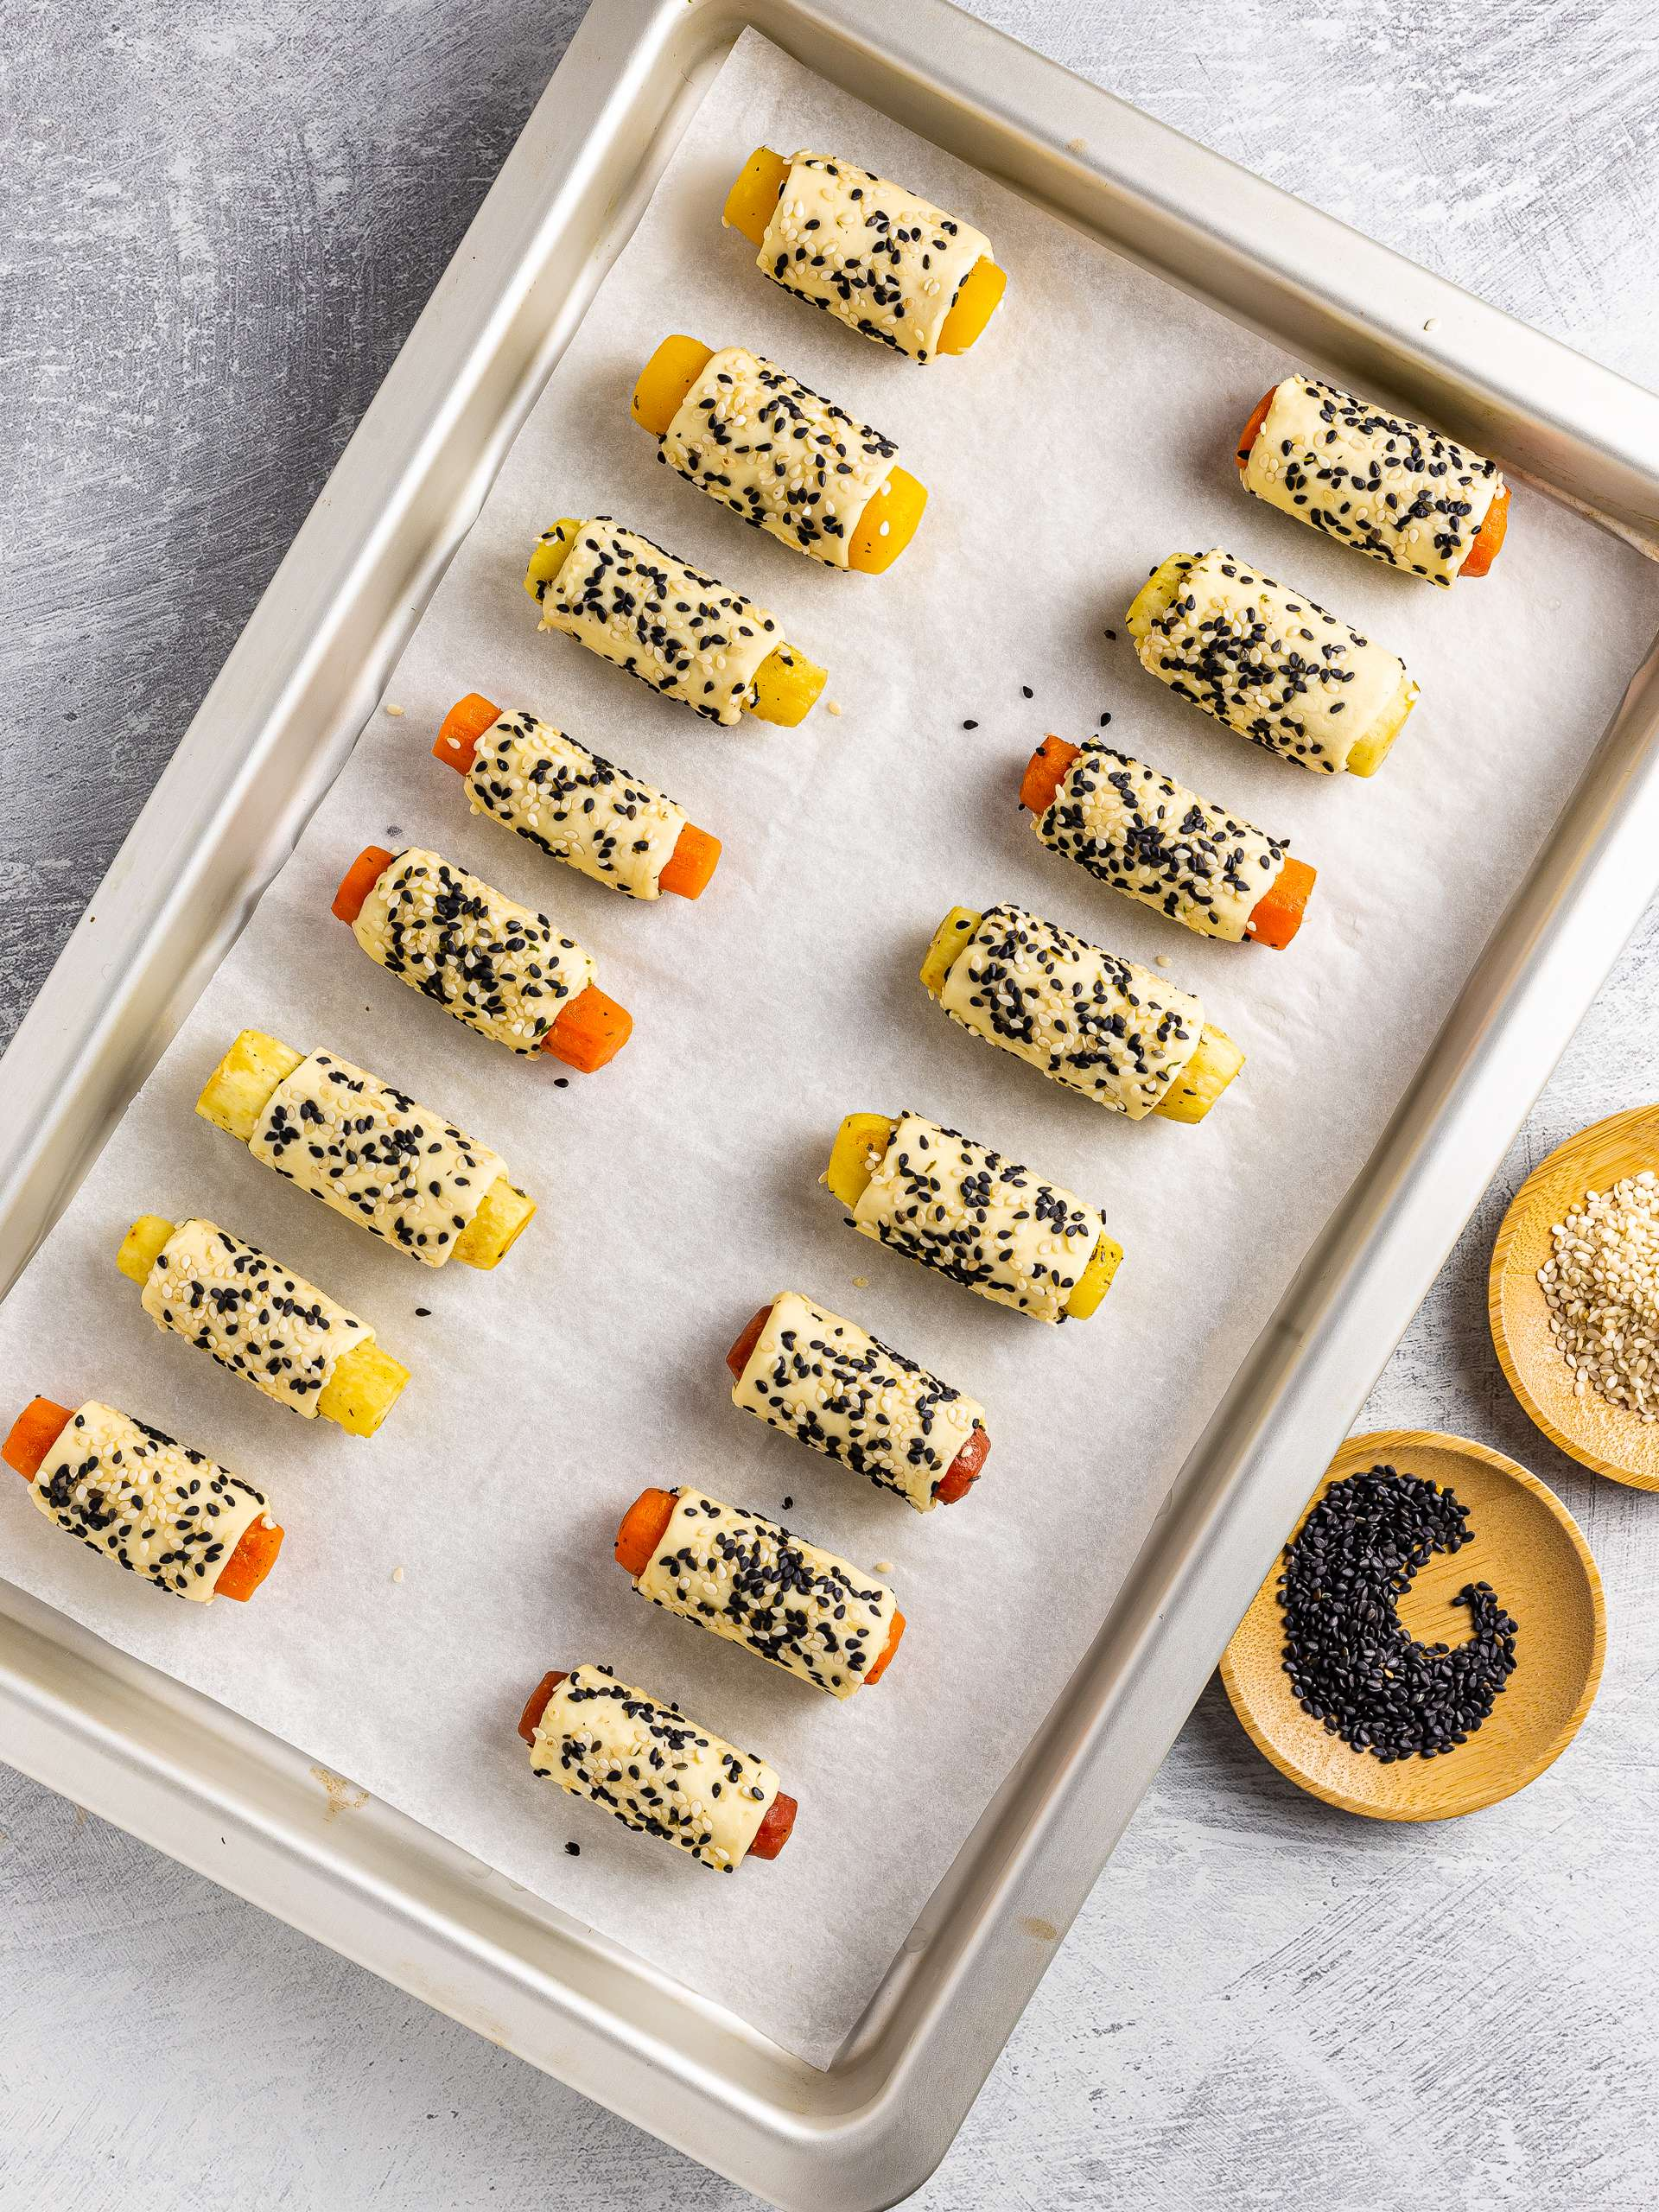 carrots pigs in a blanket pastries with sesame seeds